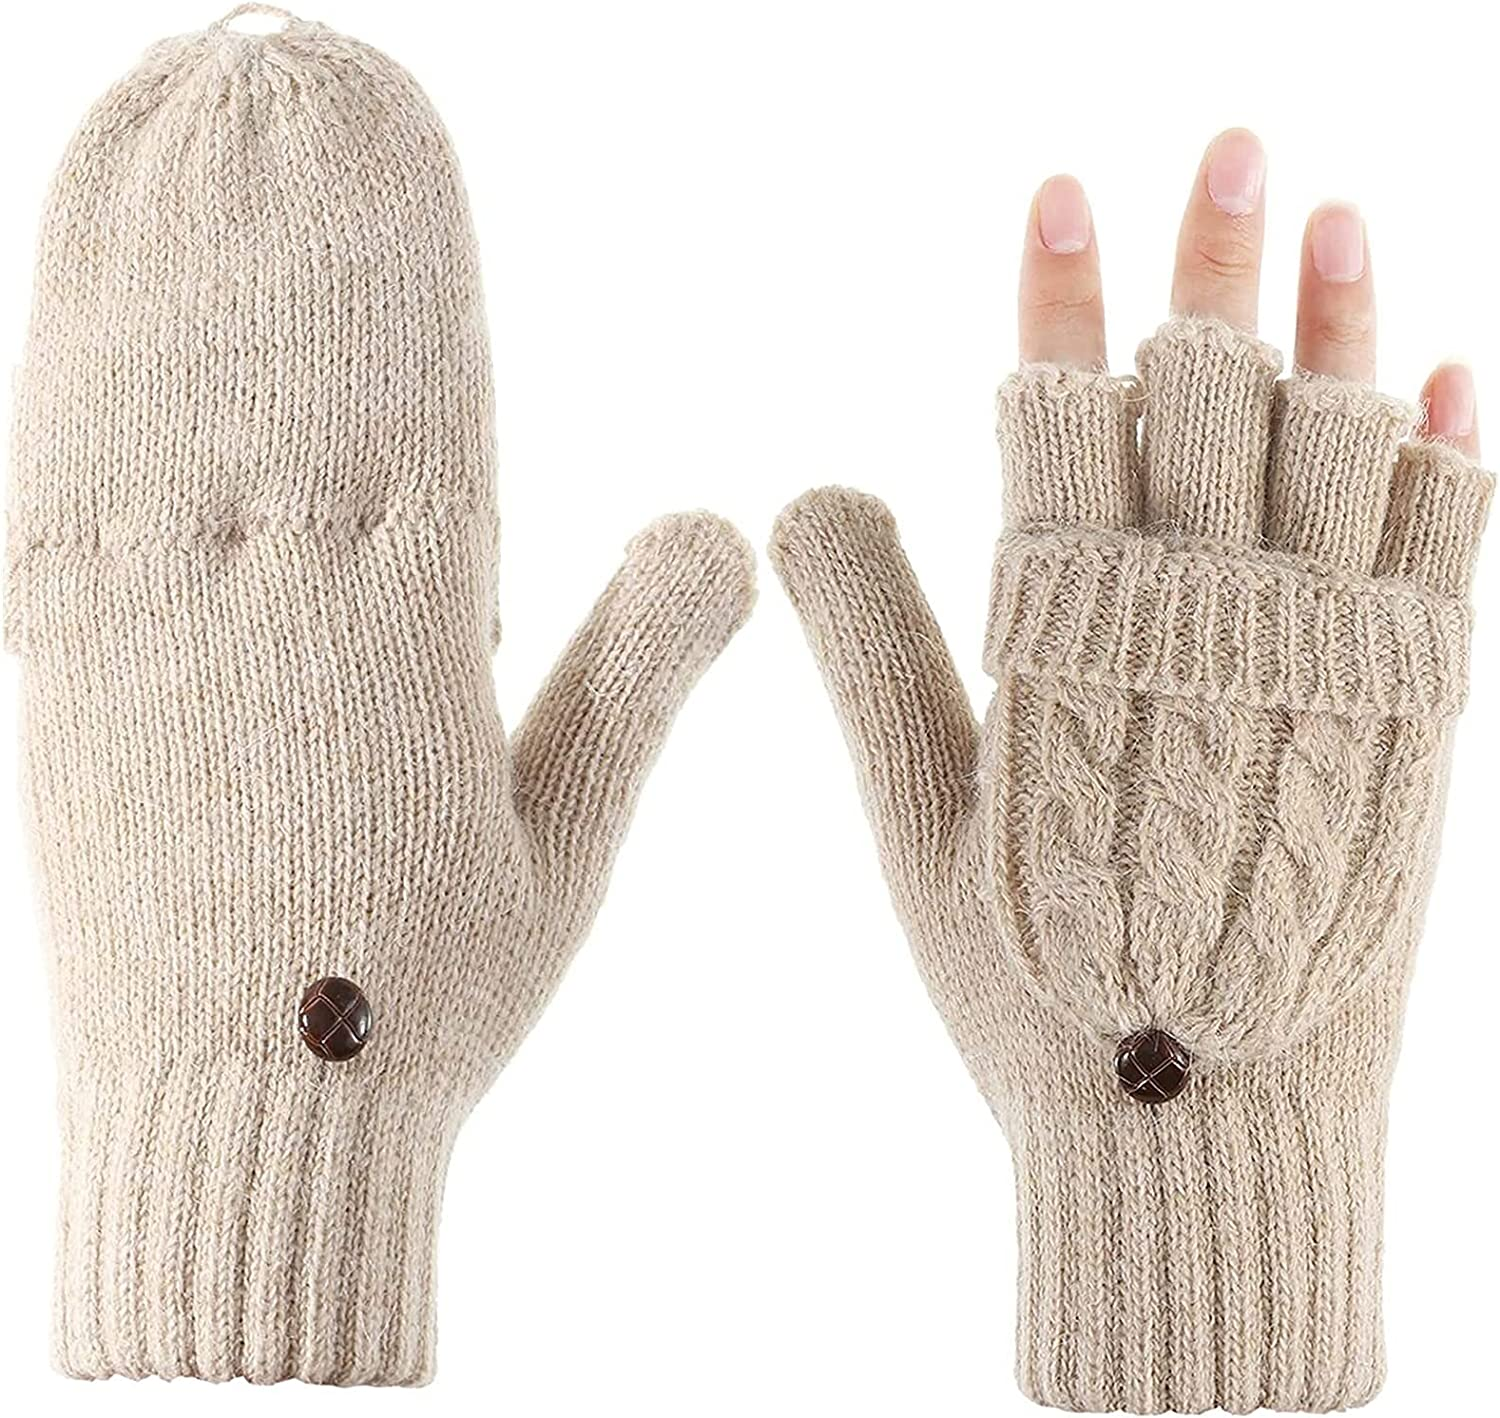 Jsmhh Women Convertible Glove Cable Knit Glove Half Finger Mitten with Cover for Cold Days (Color : Apricot)